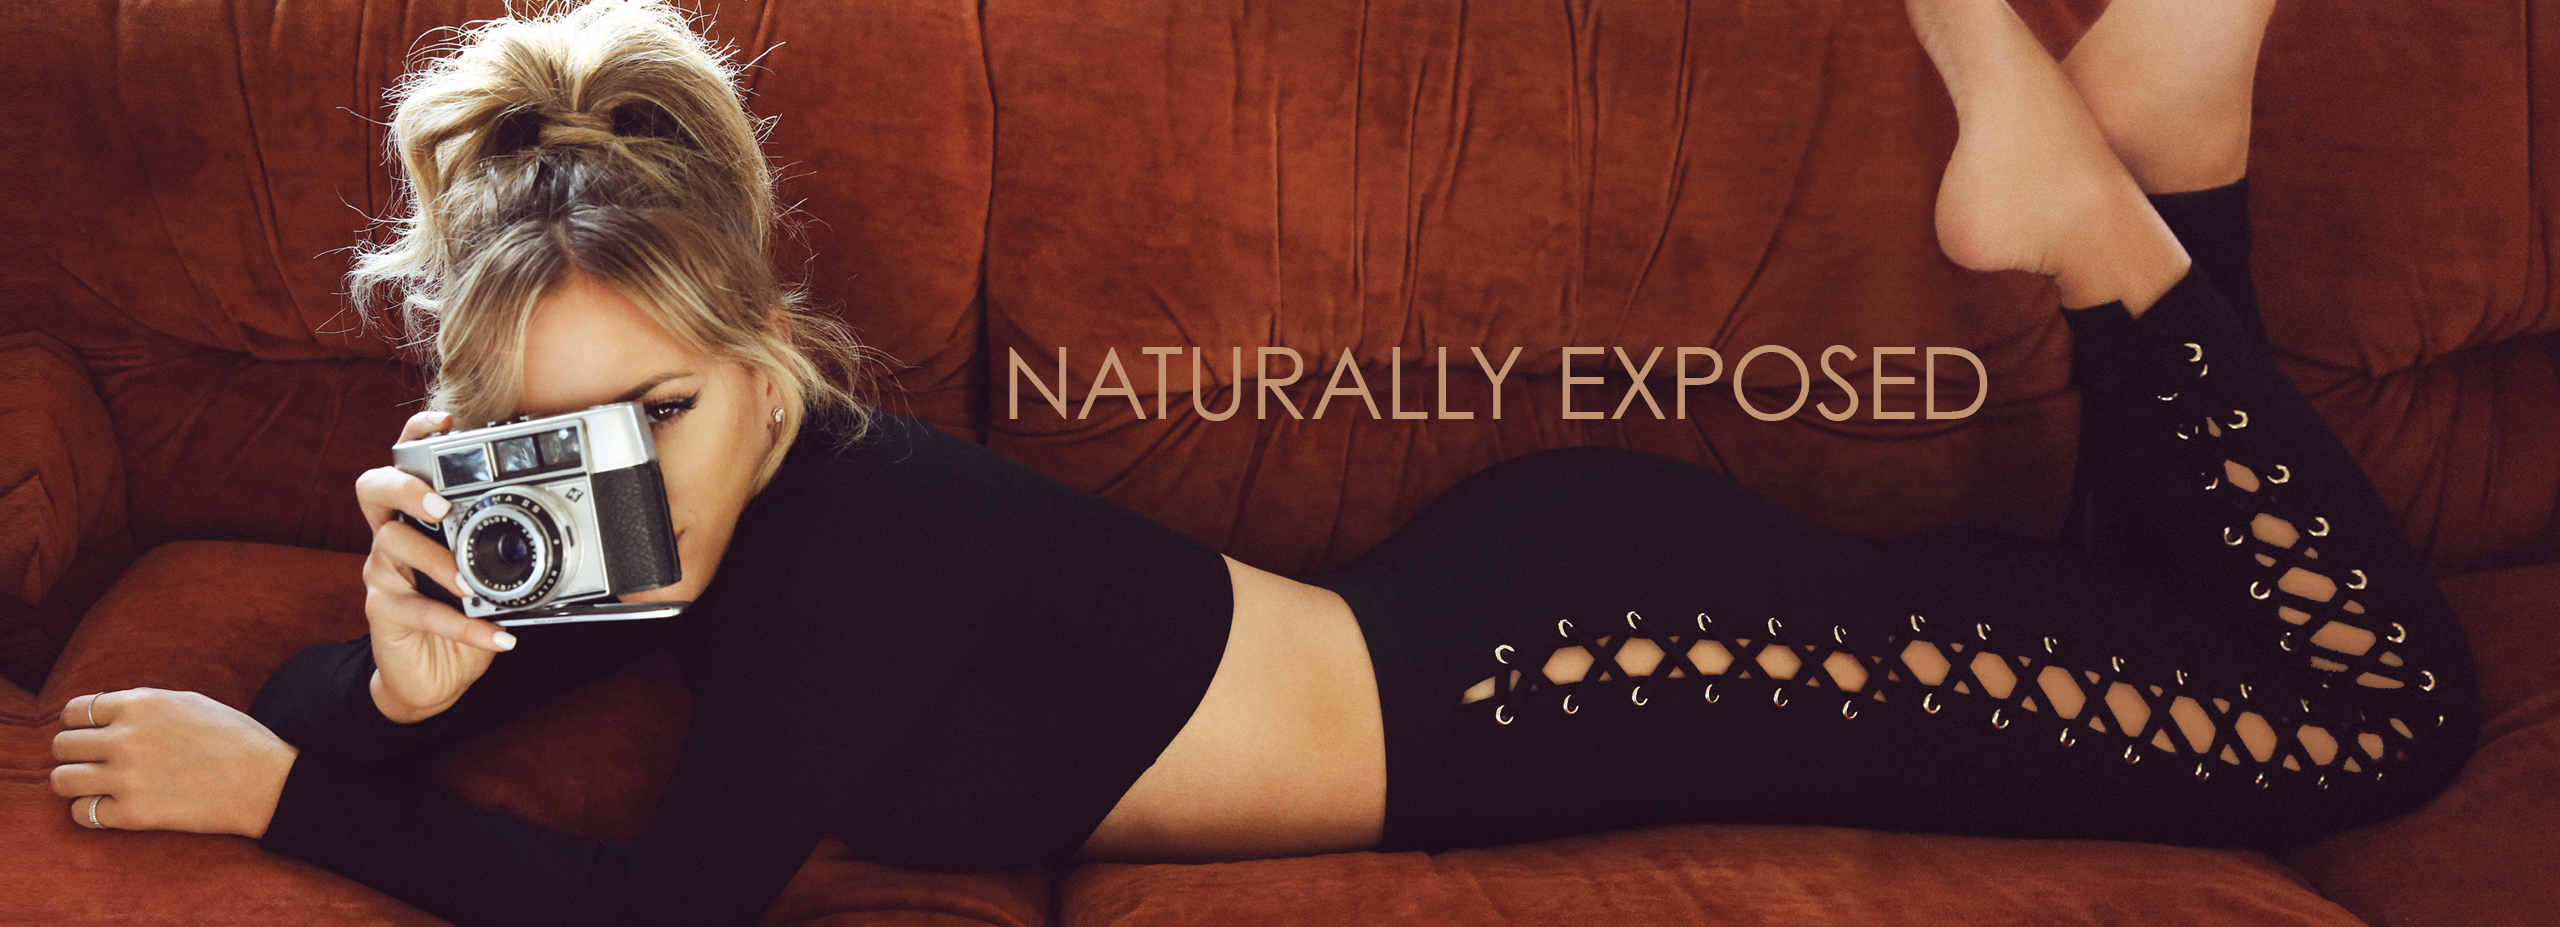 NATURALLY EXPOSED